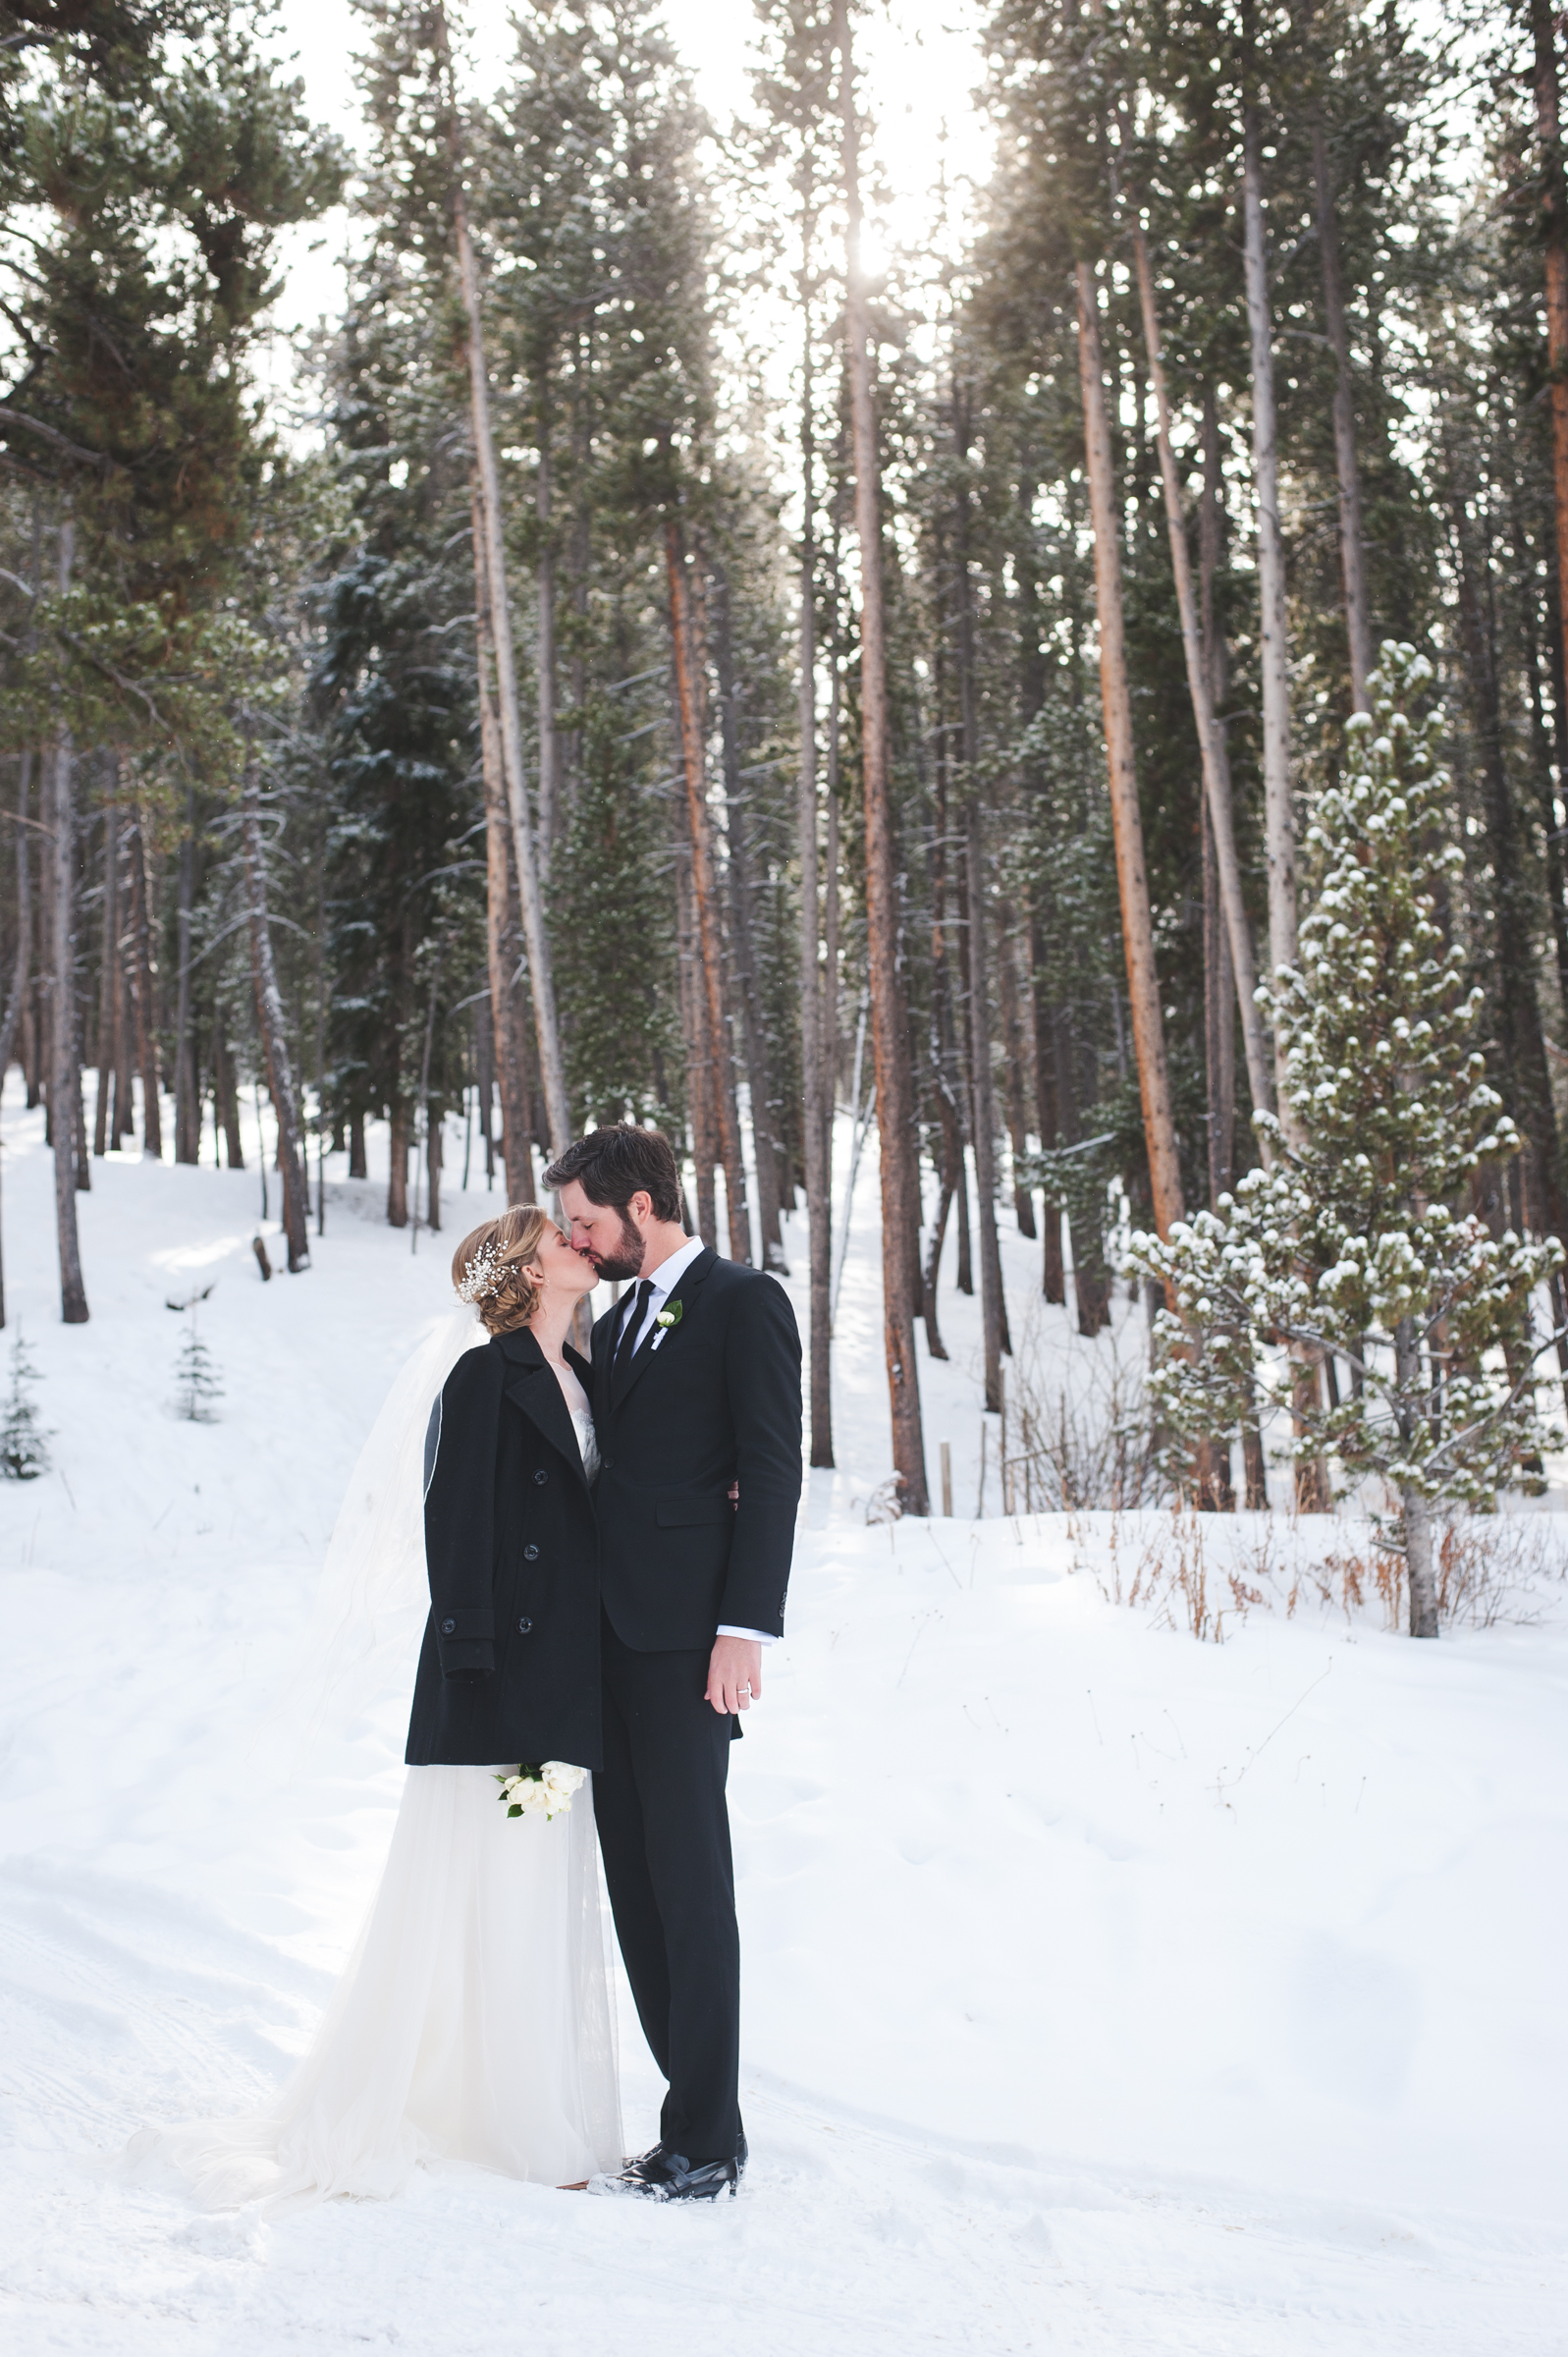 2017 in Review - {Weddings + Couples}